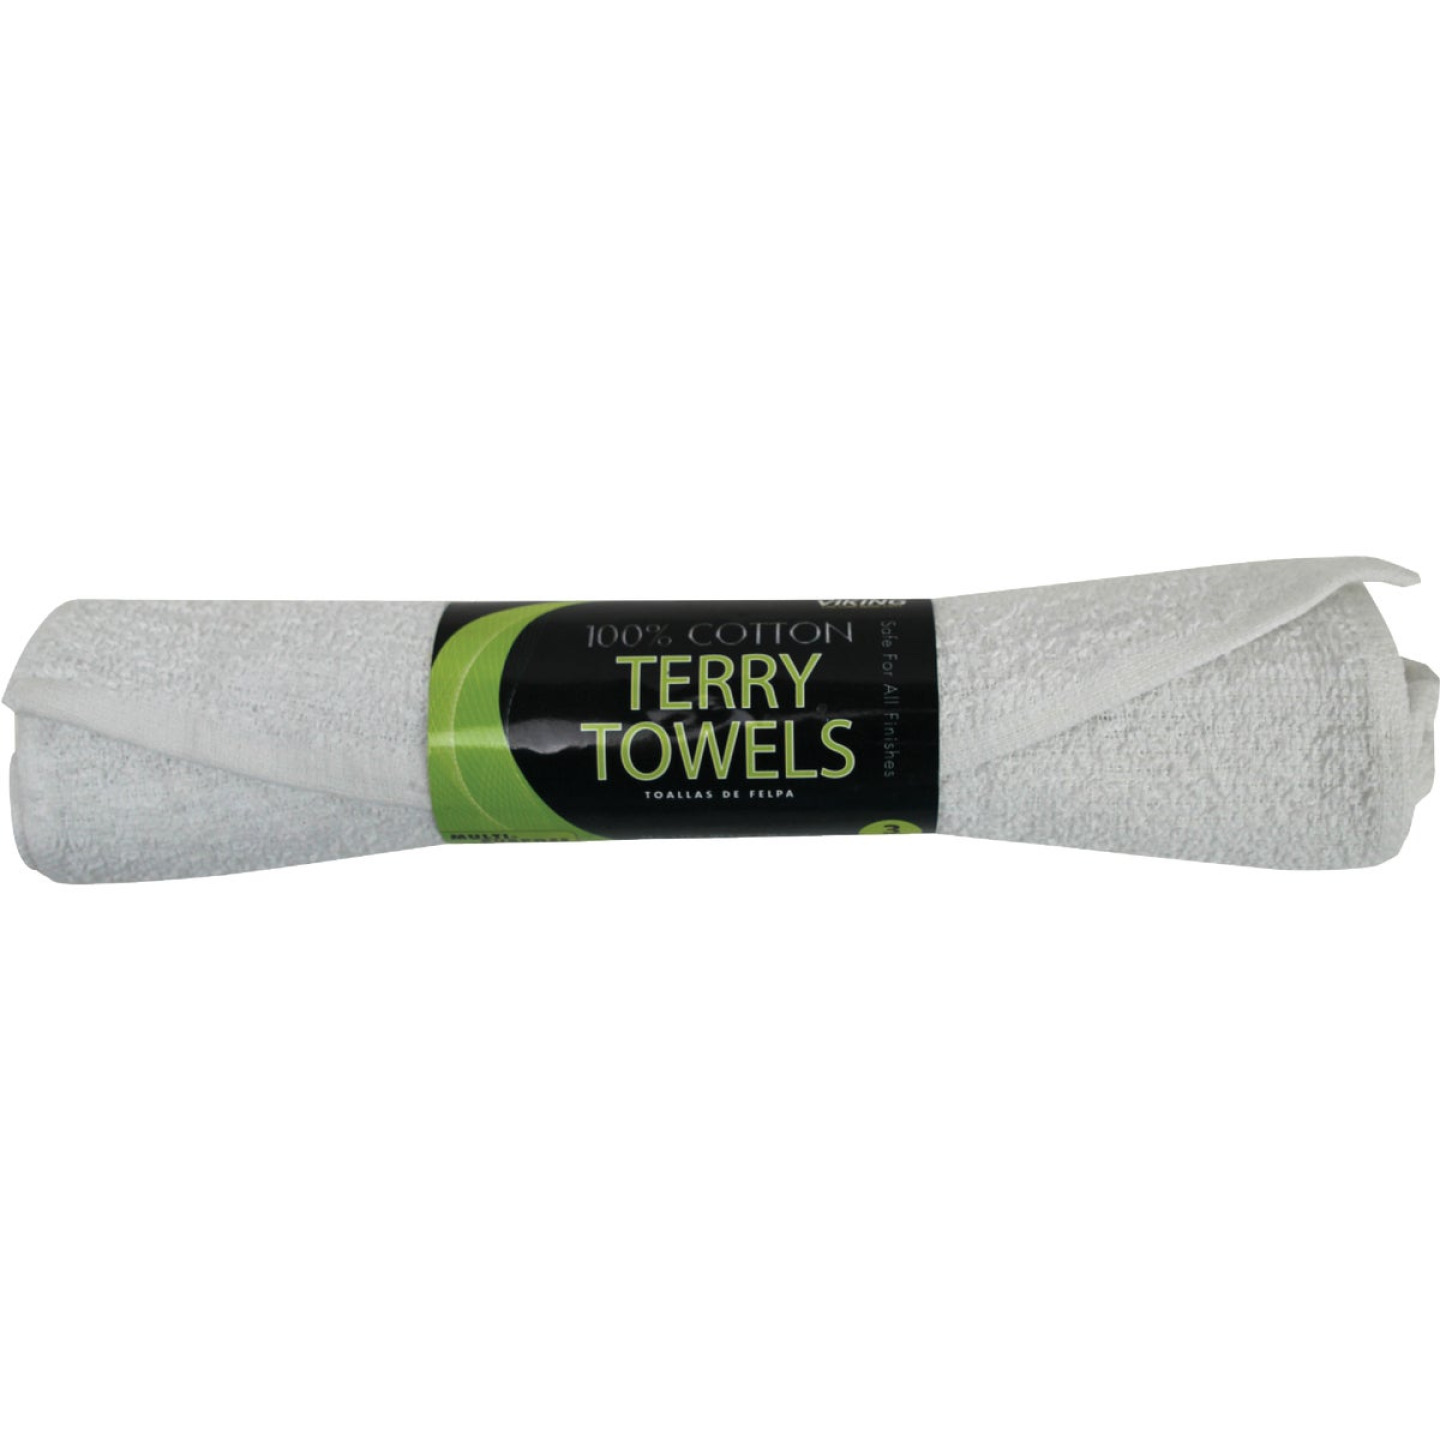 Viking 14 In. x 17 In. White Terry Cloth Towels (3-Pack) Image 1